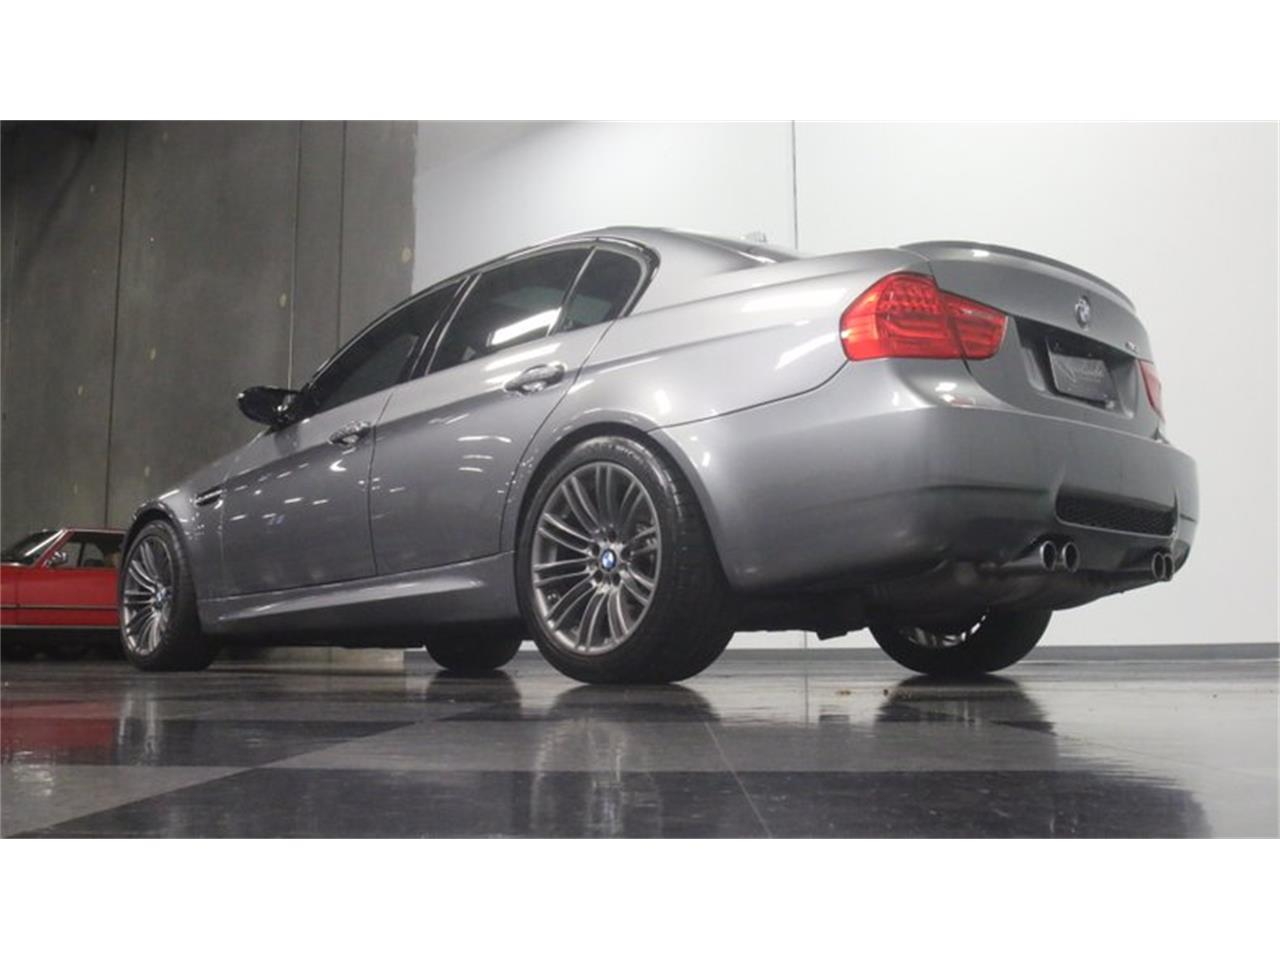 2010 BMW M3 for sale in Lithia Springs, GA – photo 26